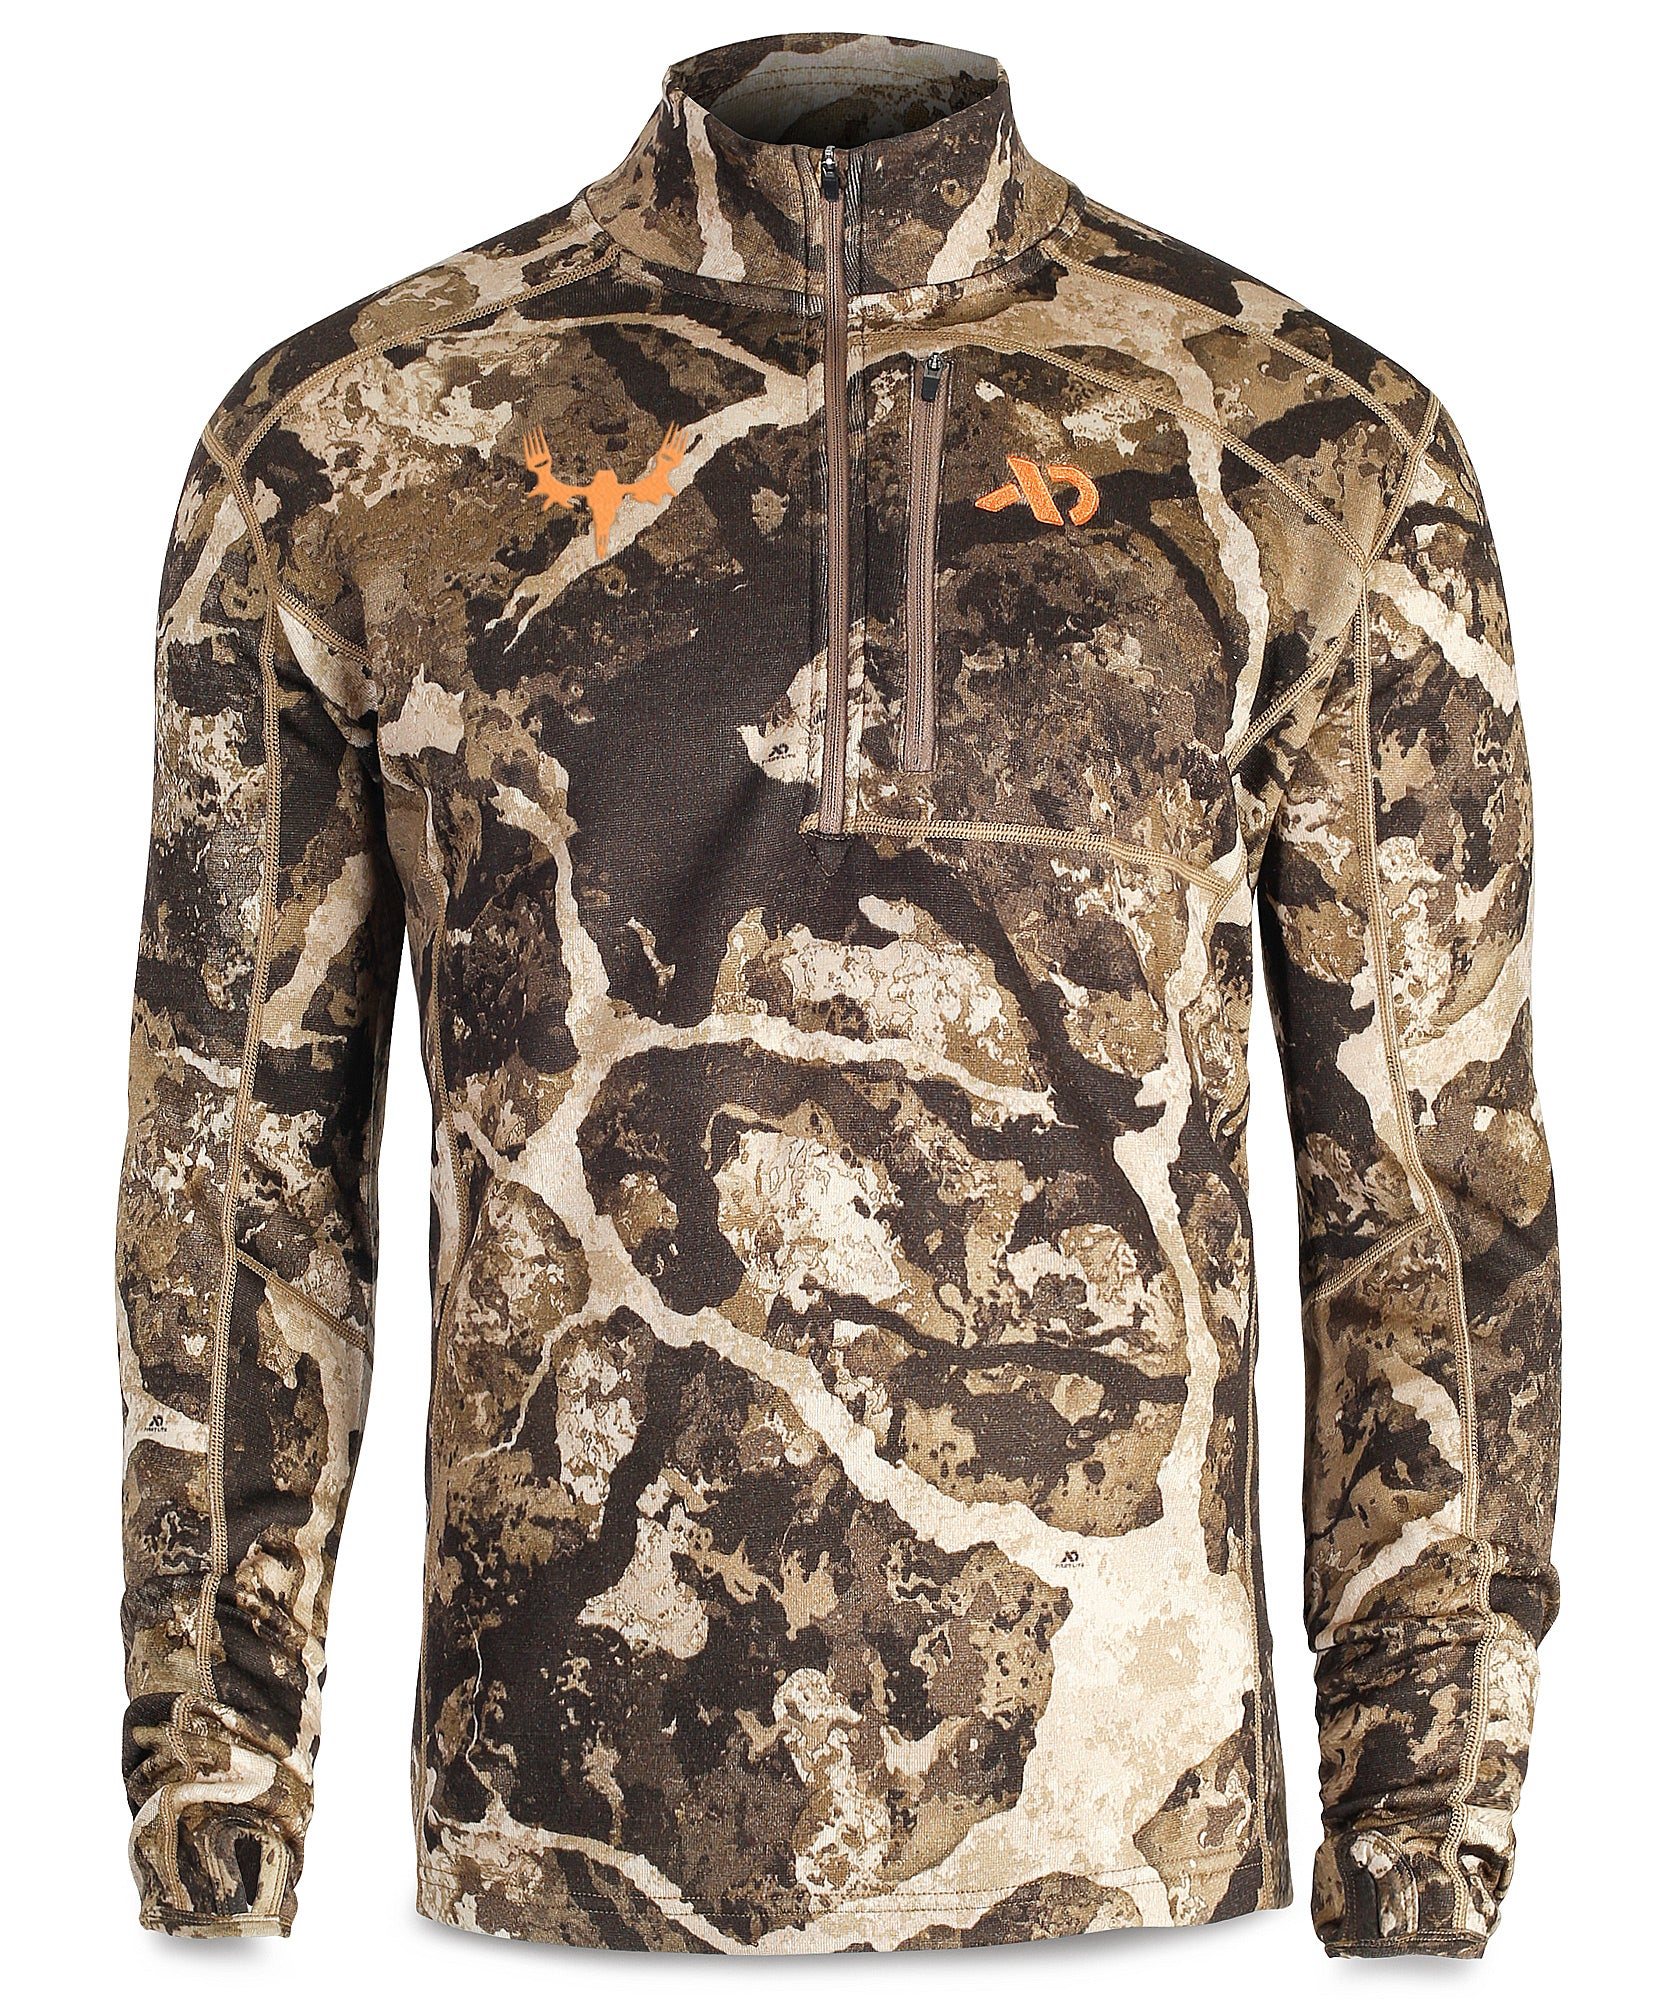 Men's Furnace Quarter Zip with MeatEater logo